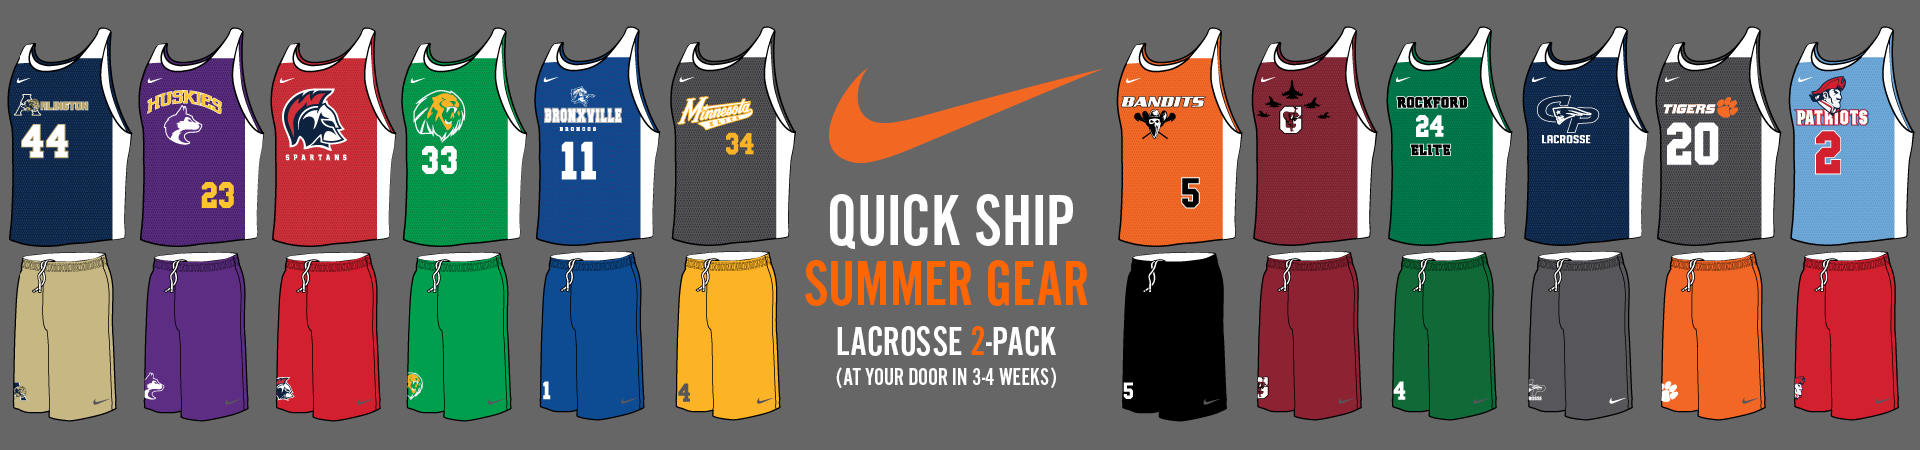 Custom Nike Lacrosse Team Practice Pack